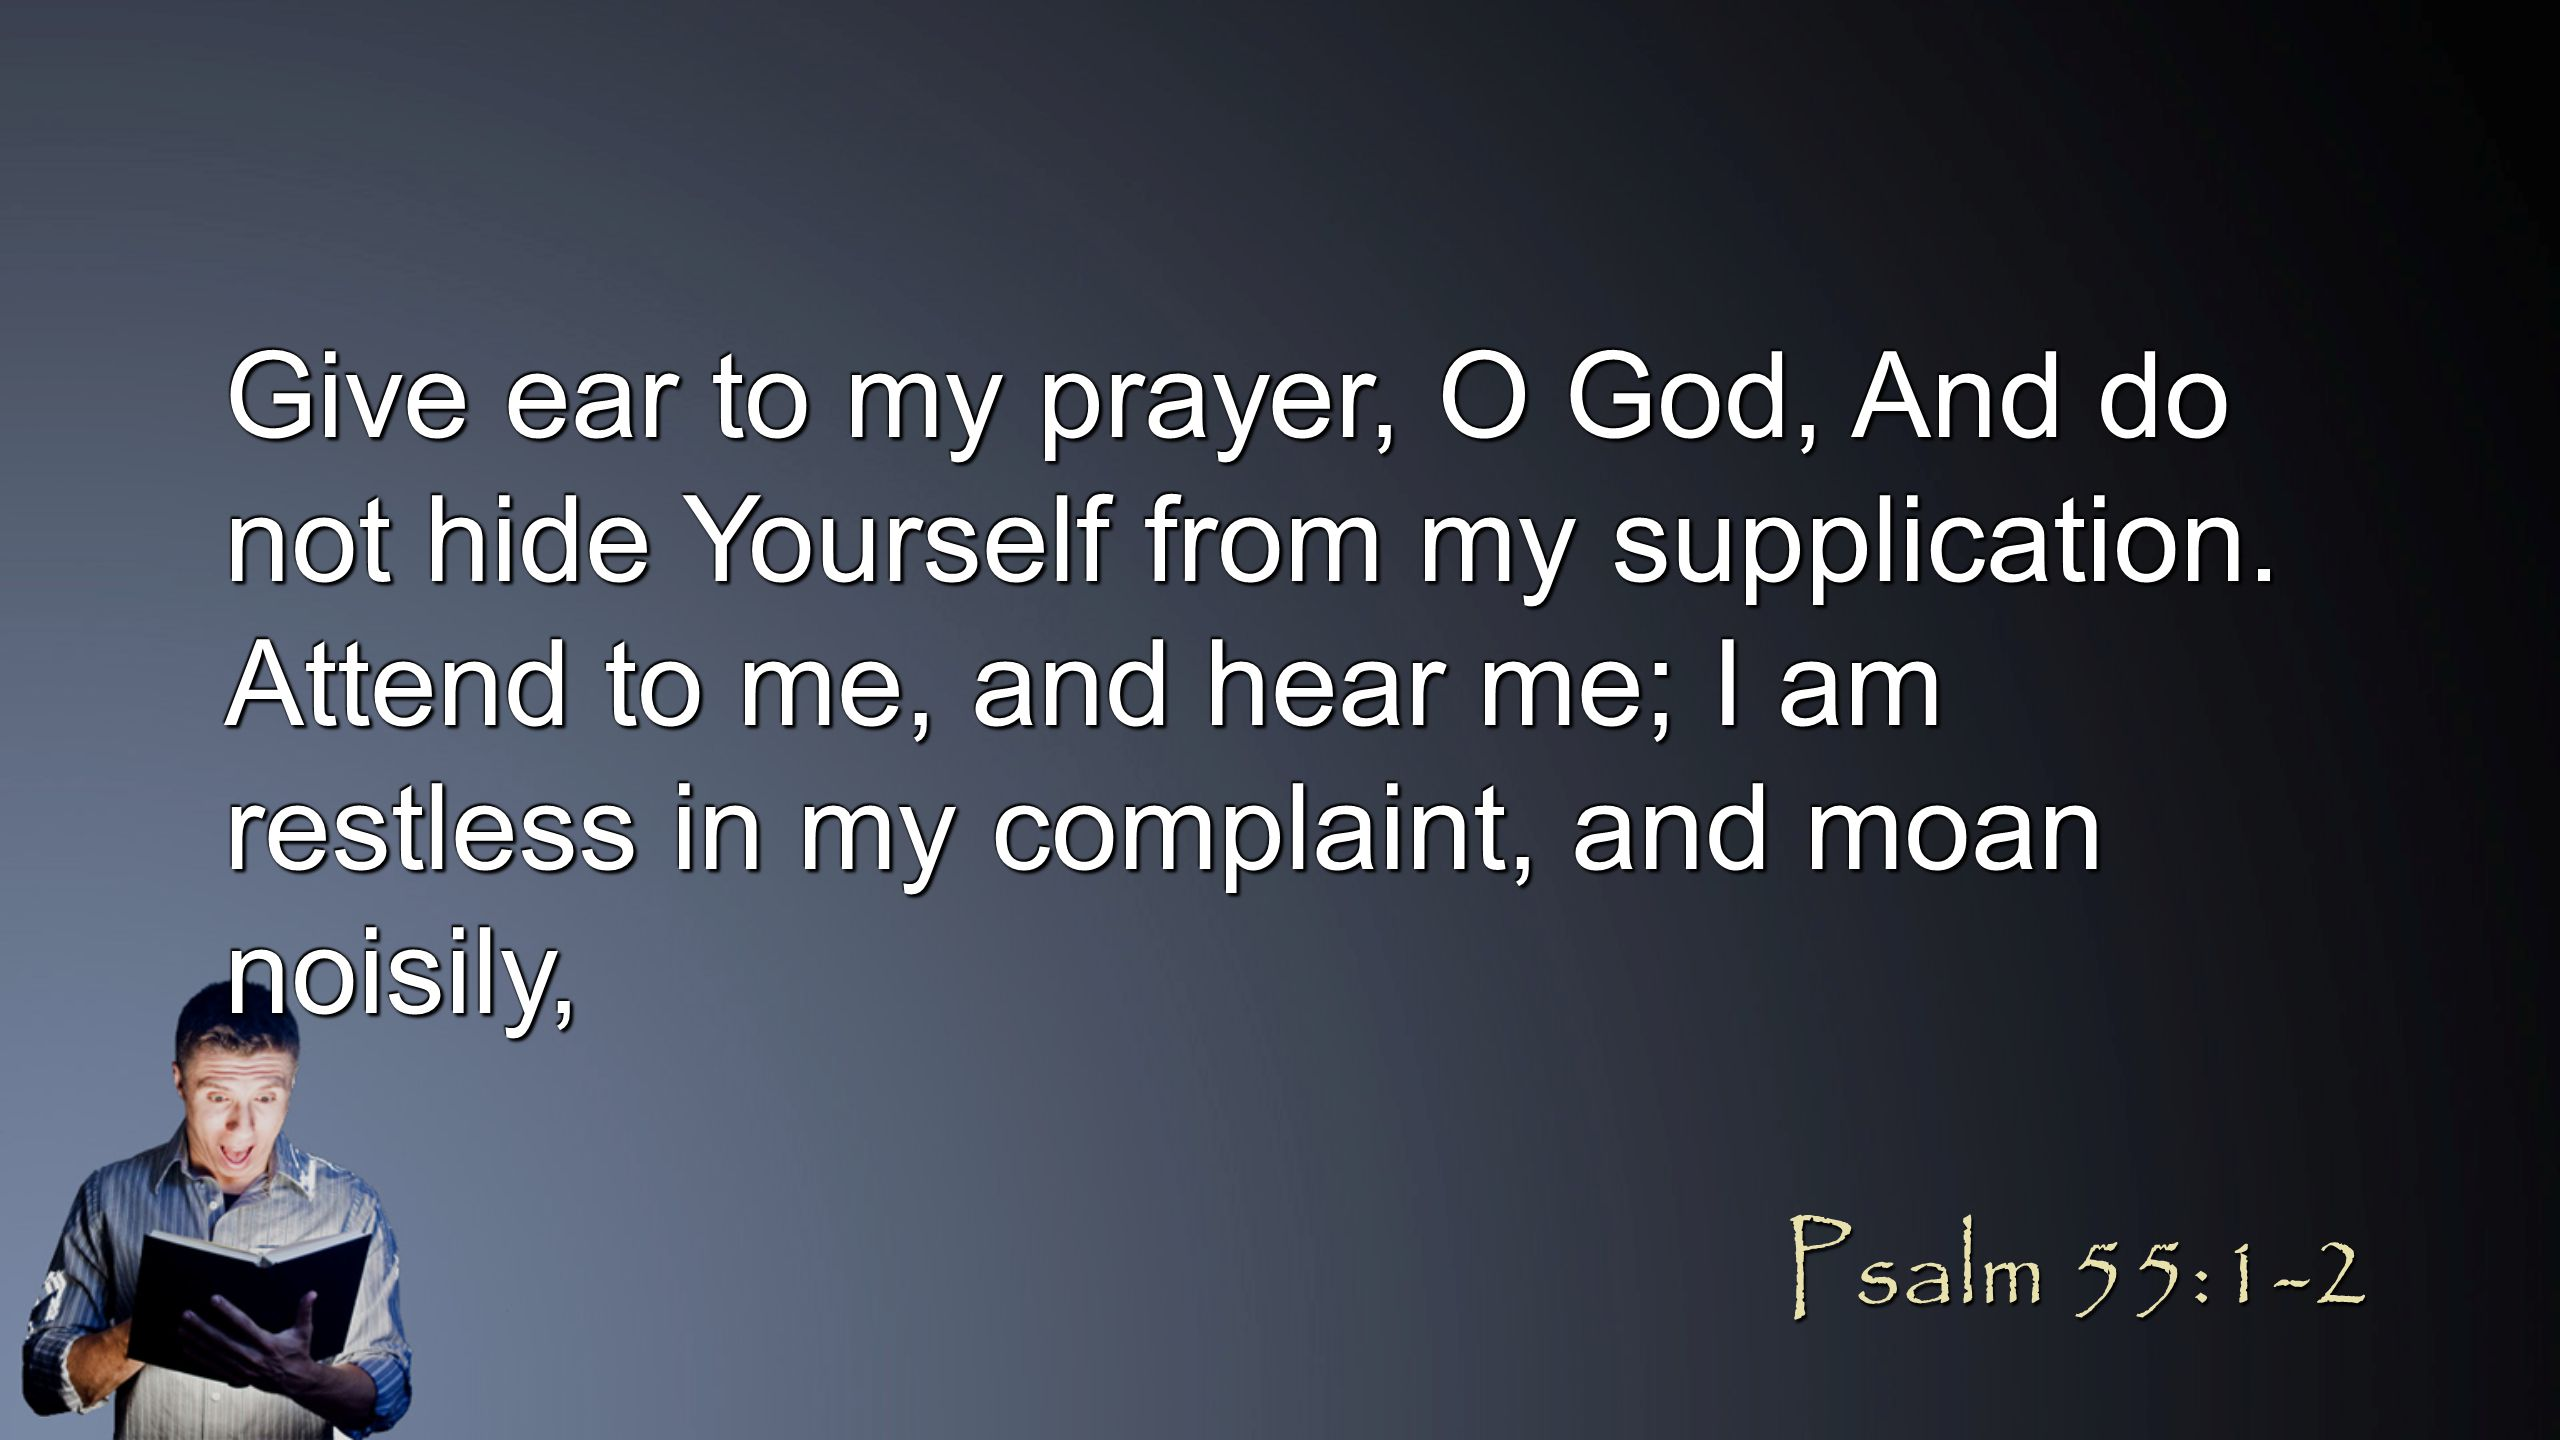 Give ear to my prayer, O God, And do not hide Yourself from my supplication. Attend to me, and hear me; I am restless in my complaint, and moan noisil